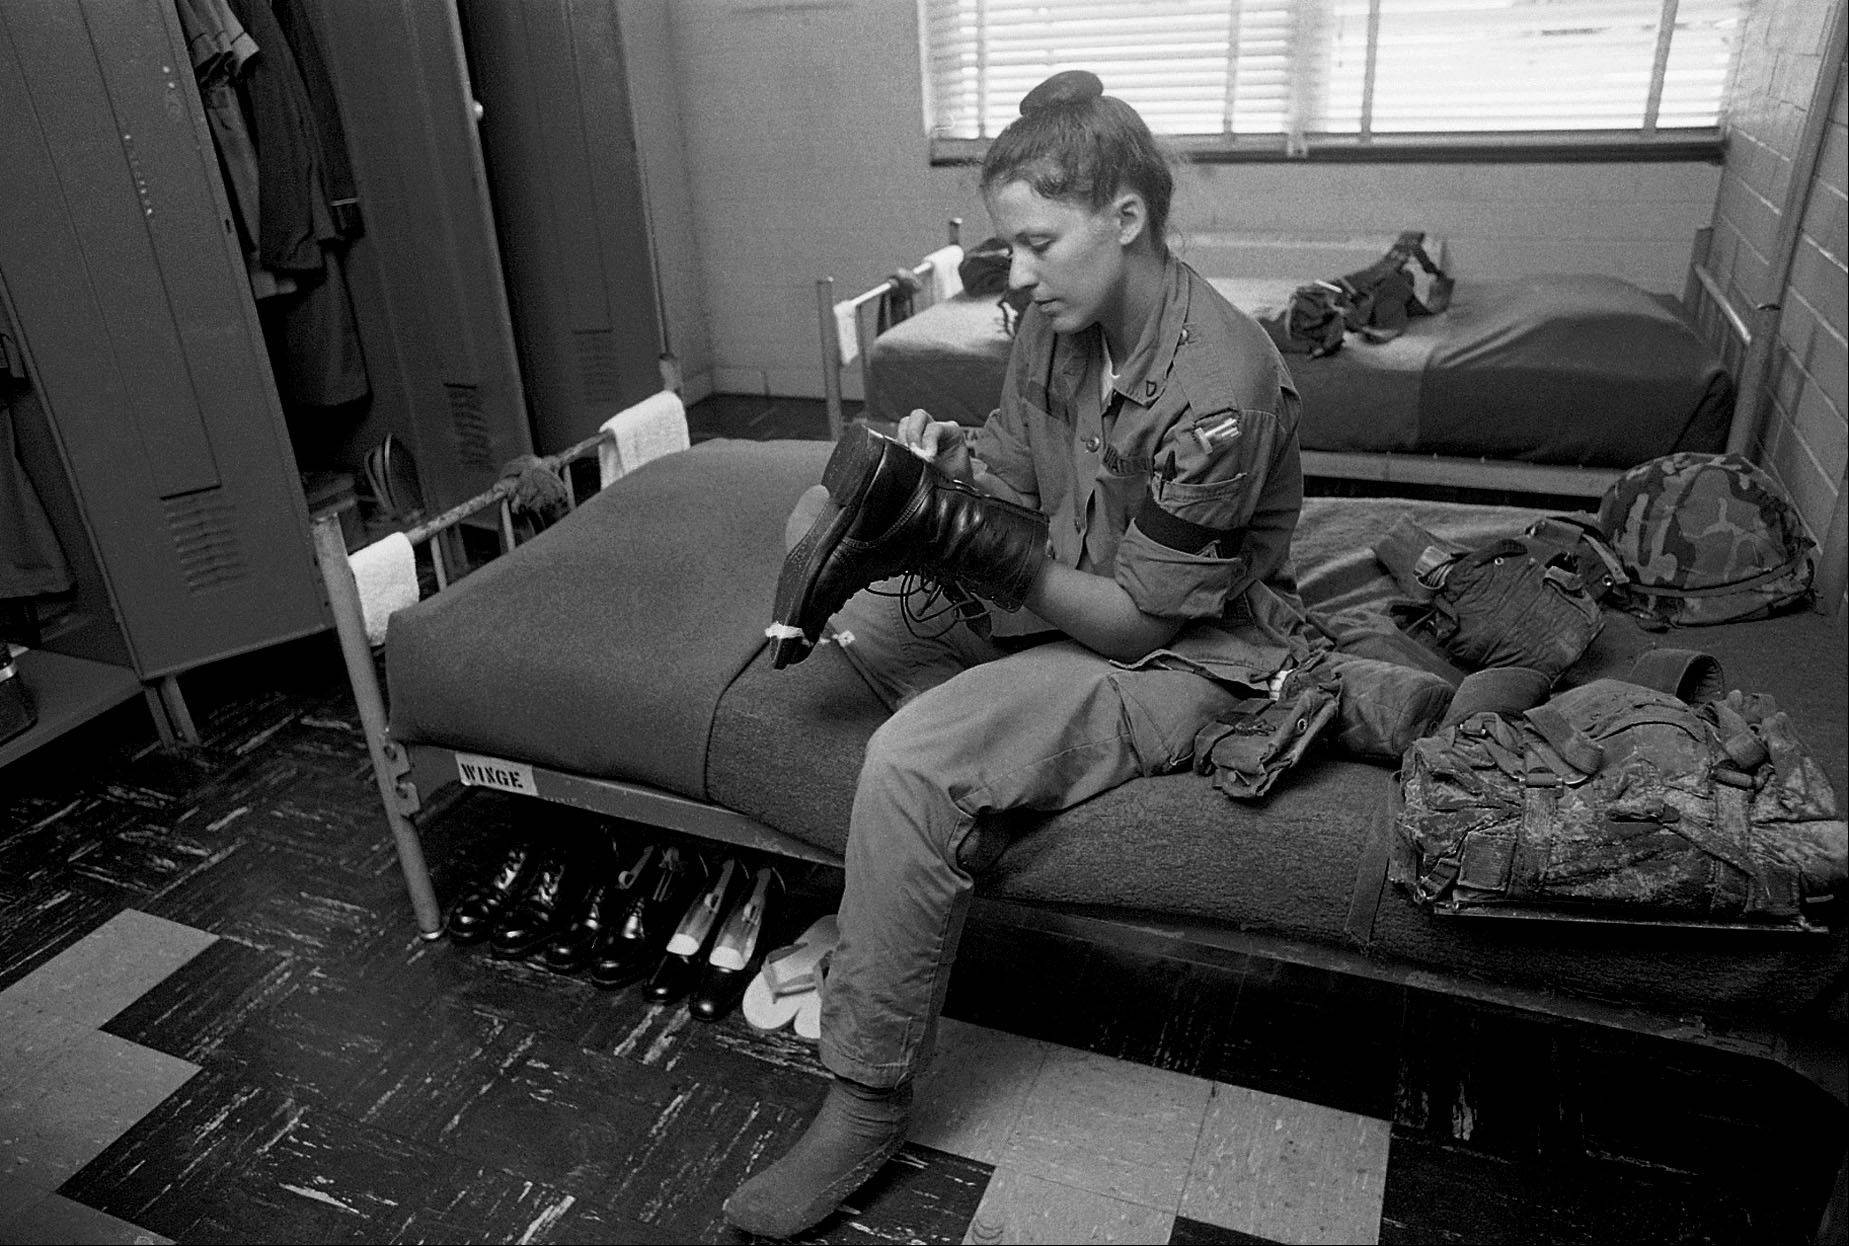 Sept. 21, 1977: Recruit Angelia Wingle, of Lyons Ga., shines her combat boot as she sits on a bunk in the barracks at Fort Jackson, S.C.